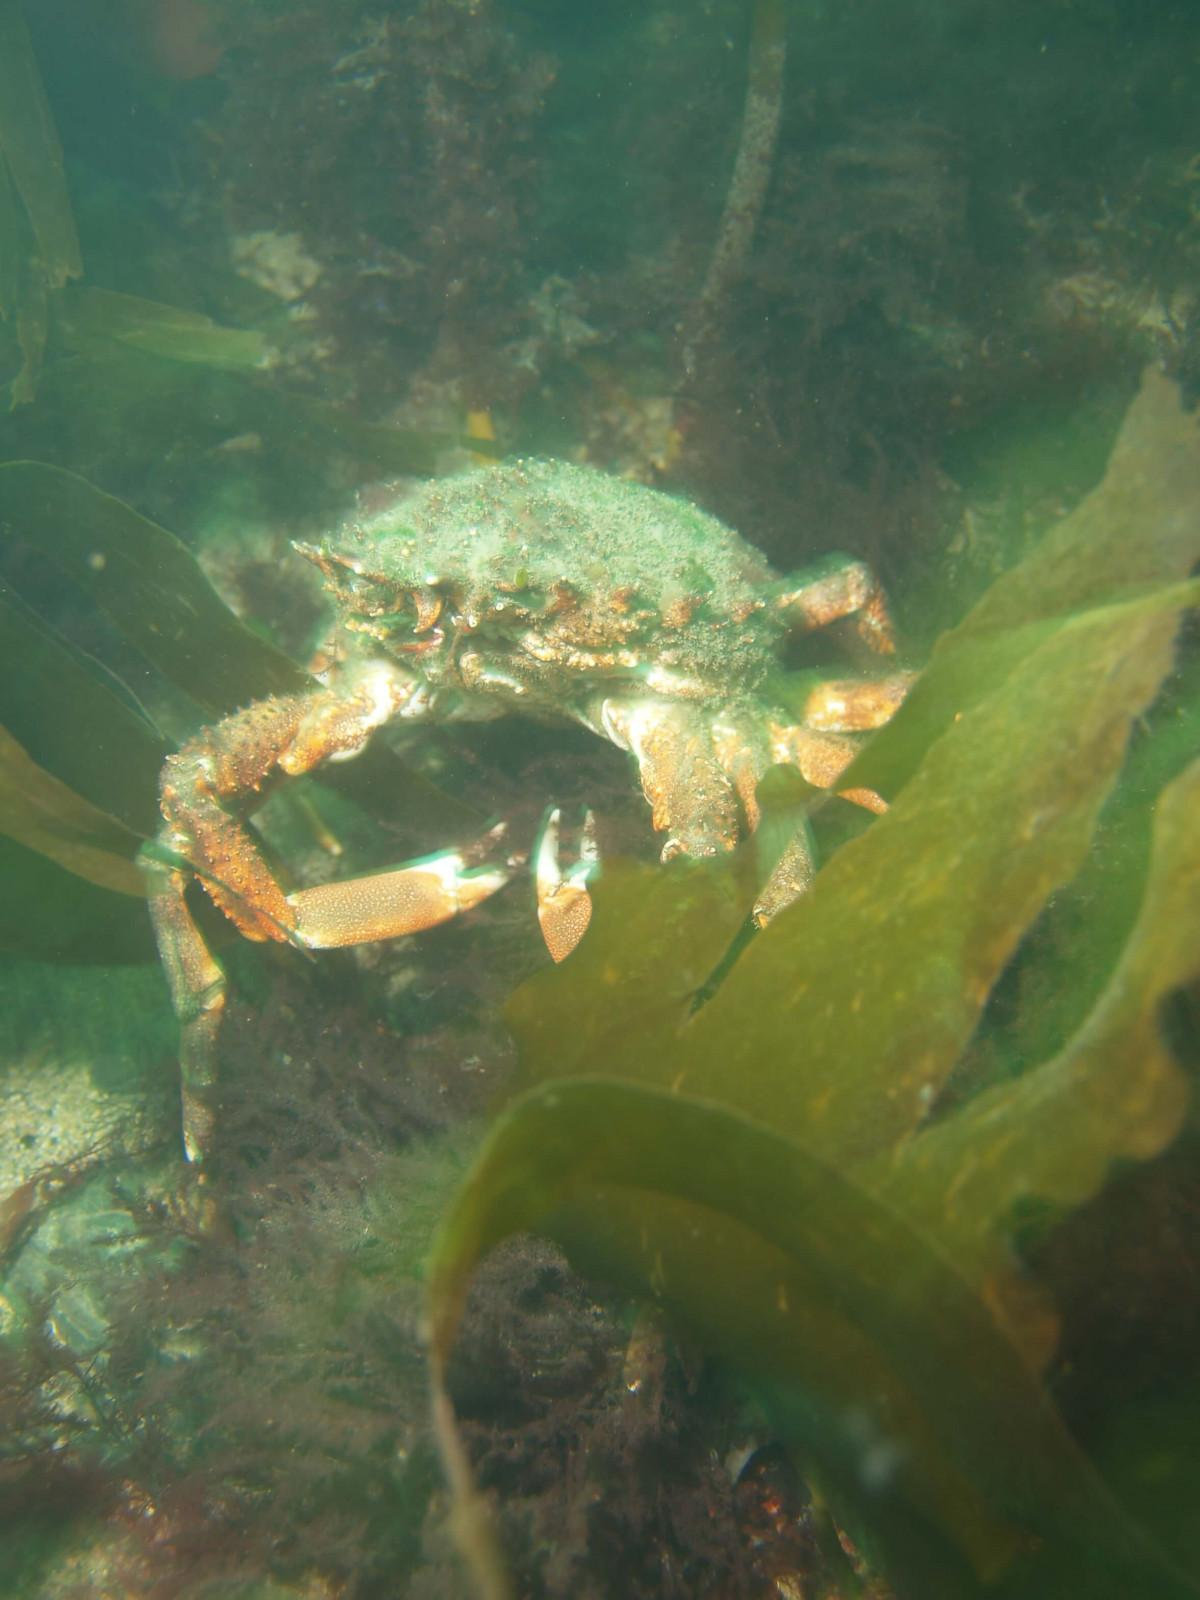 Images from Dive at Porth Dafarch, west coast of Anglesey in North Wales (3)